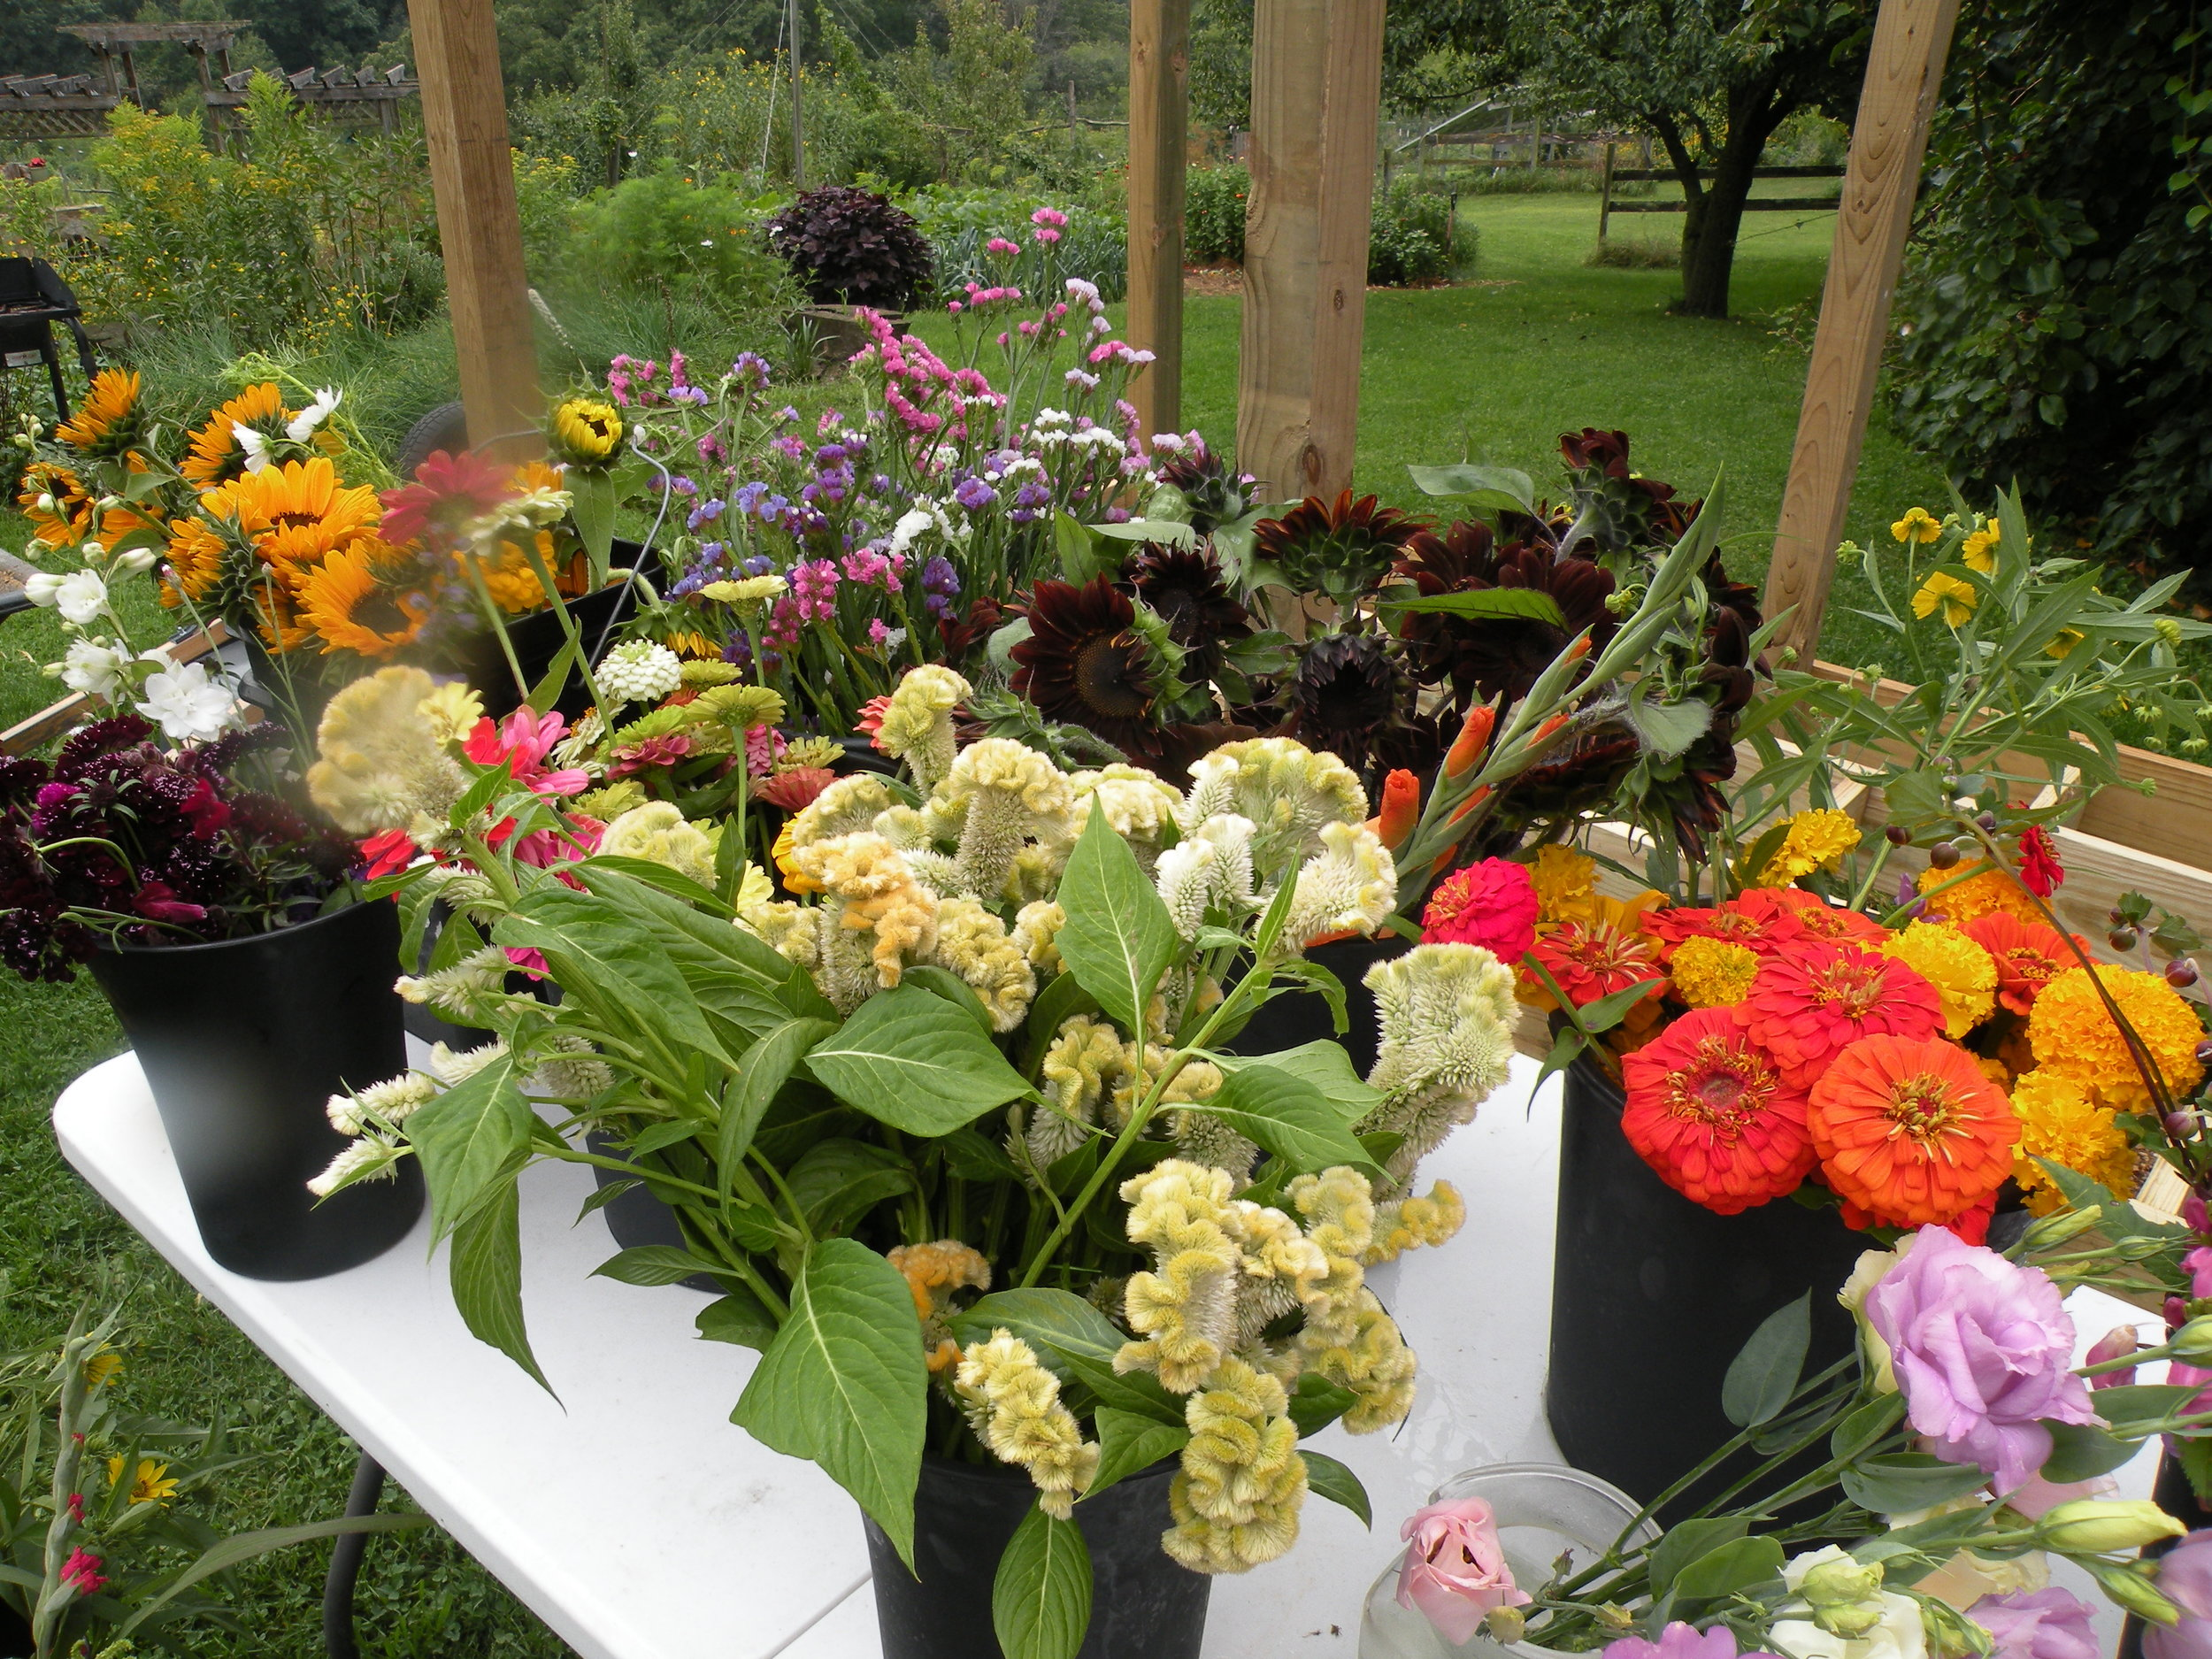 Flowers have been making up for the lack of sunshine this season. Photo by Erin Schneider